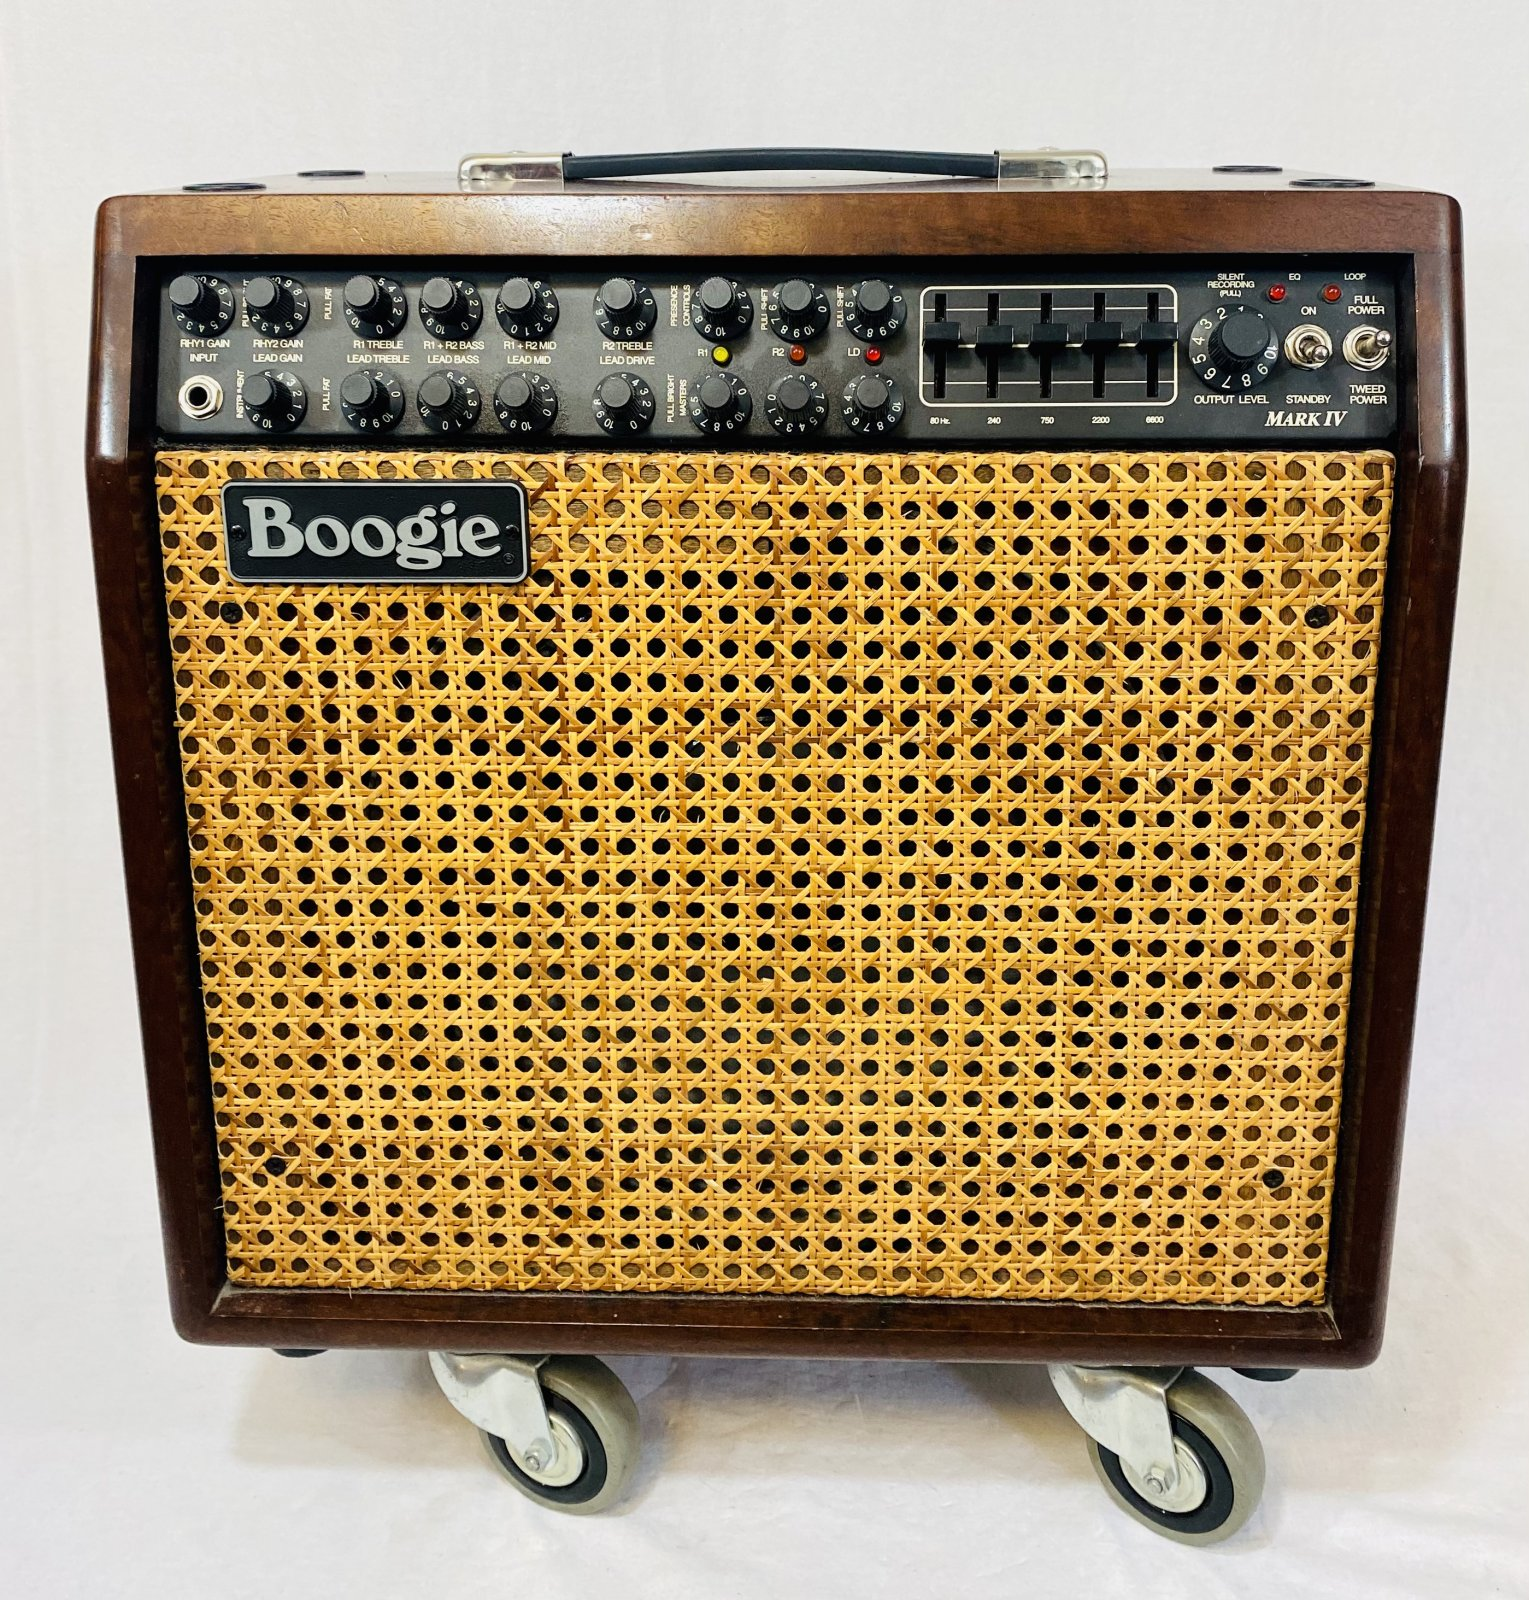 MESA BOOGIE MARK IV 1X12 COMBO HARDWOOD ENCLOSURE/WICKER GRILLE FOOTSWITCH AND MANUAL